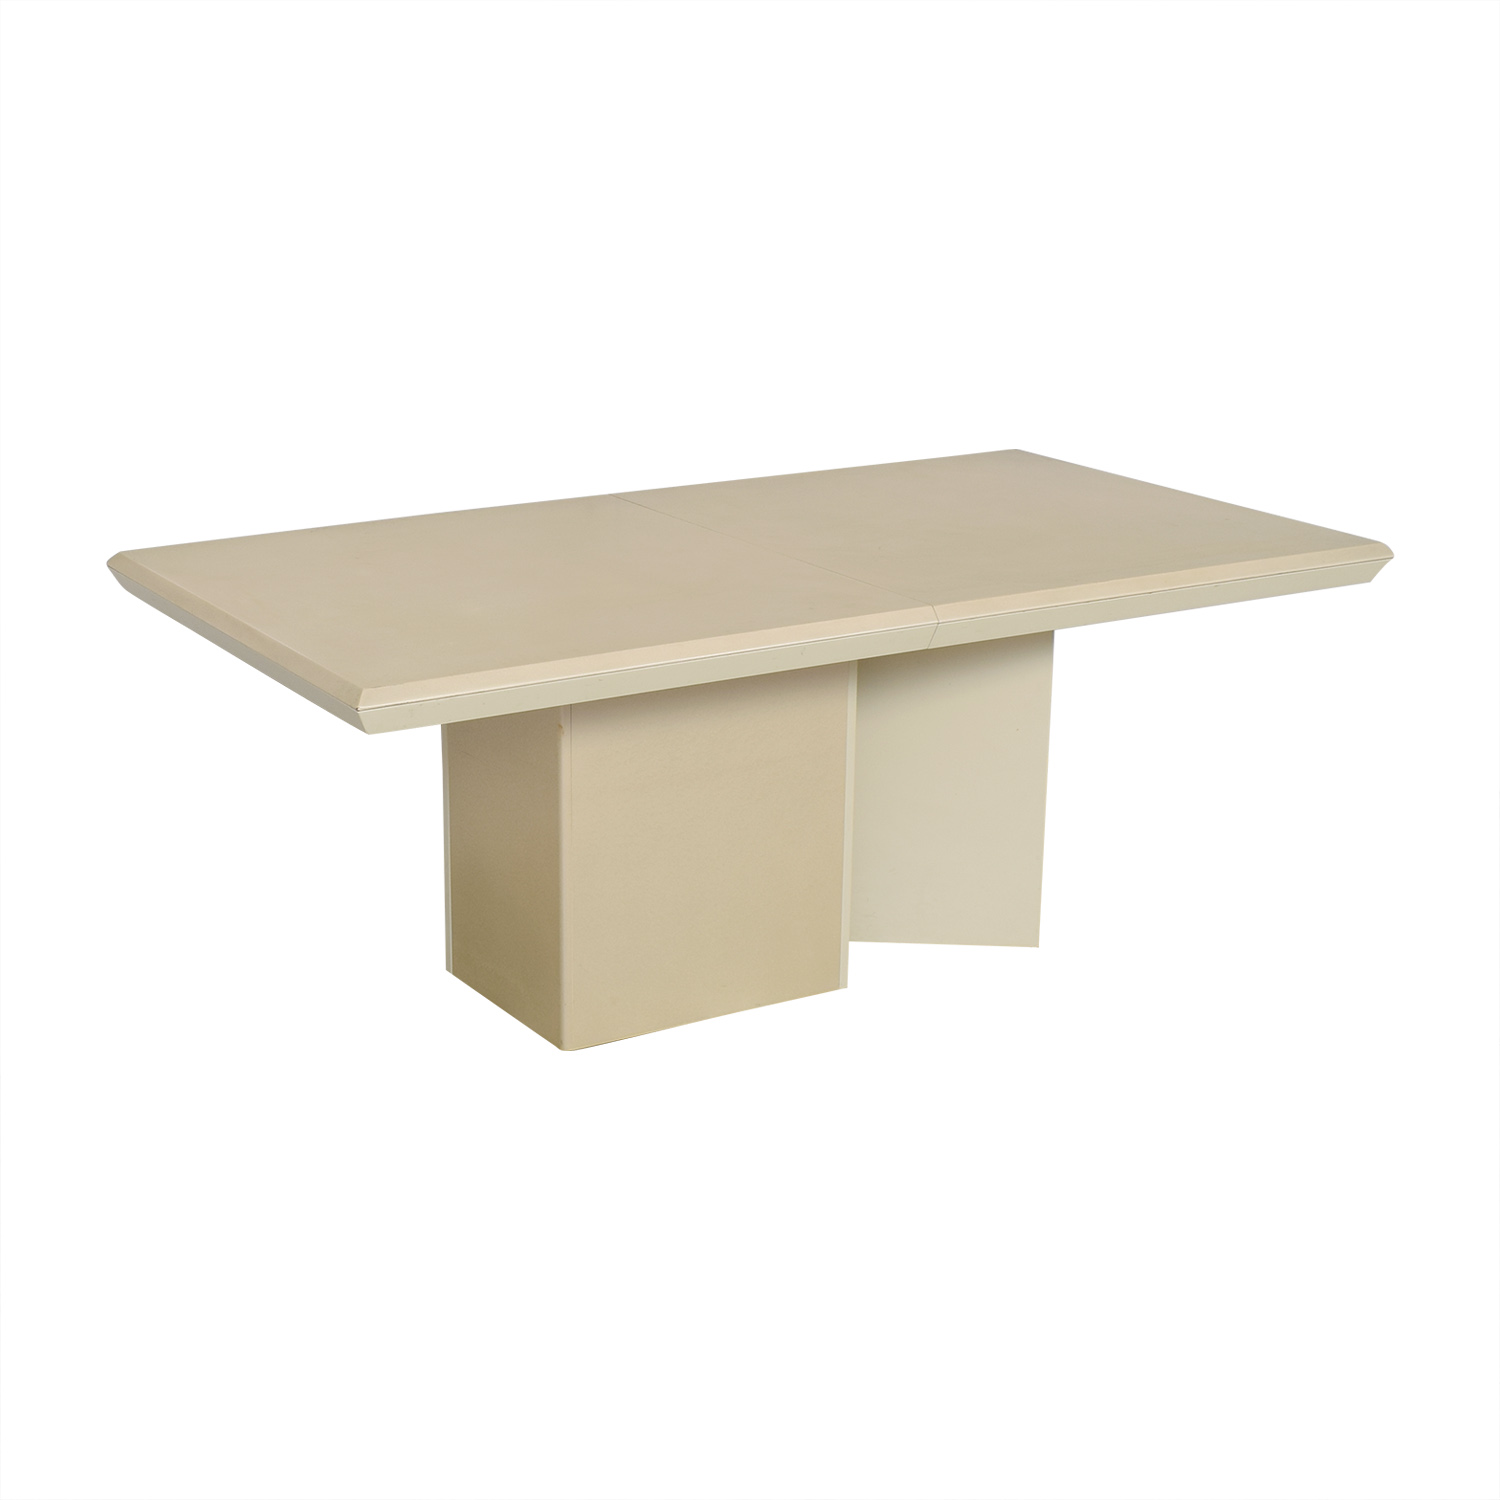 Carrier Furniture Carrier Furniture Extendable Dining Table off white